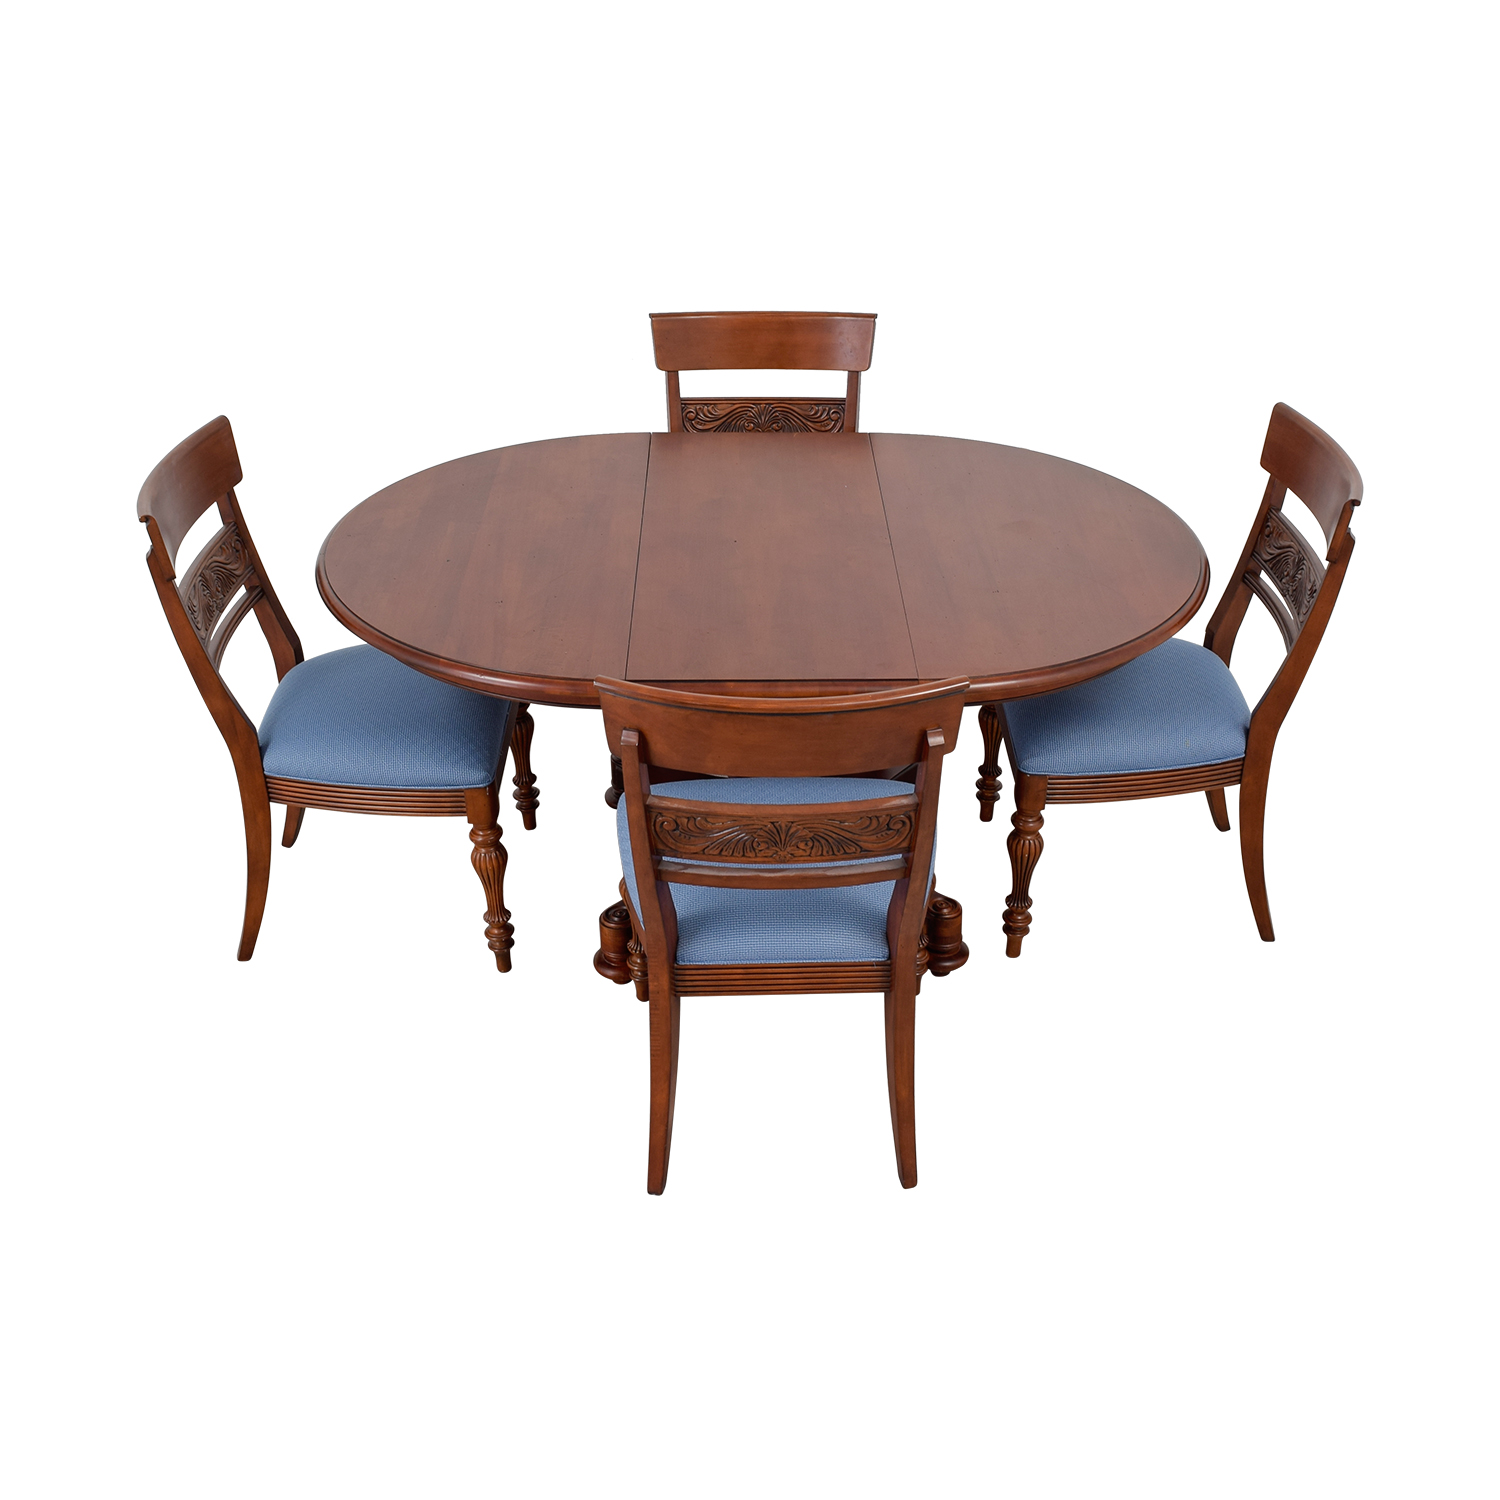 Ethan Allen Ethan Allen Round Extendable Dining Set used